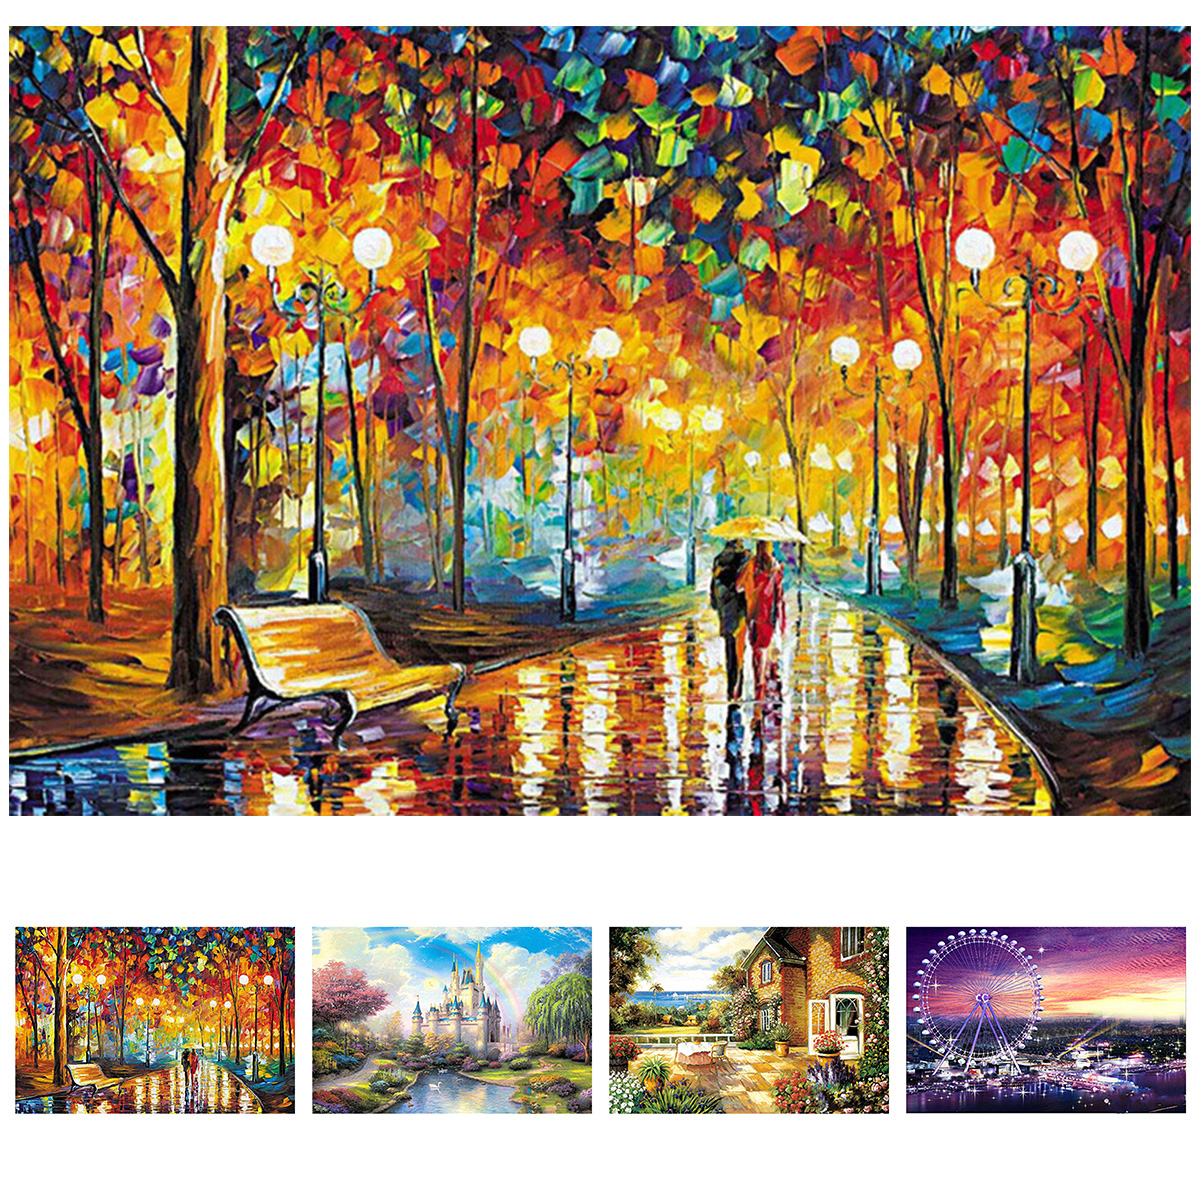 2mm Thick Jigsaw Puzzles Kit 1000 Pieces Wooden Puzzles Decompression Toy Non-Toxic Jigsaw Puzzles For Adults Kids Art Sets